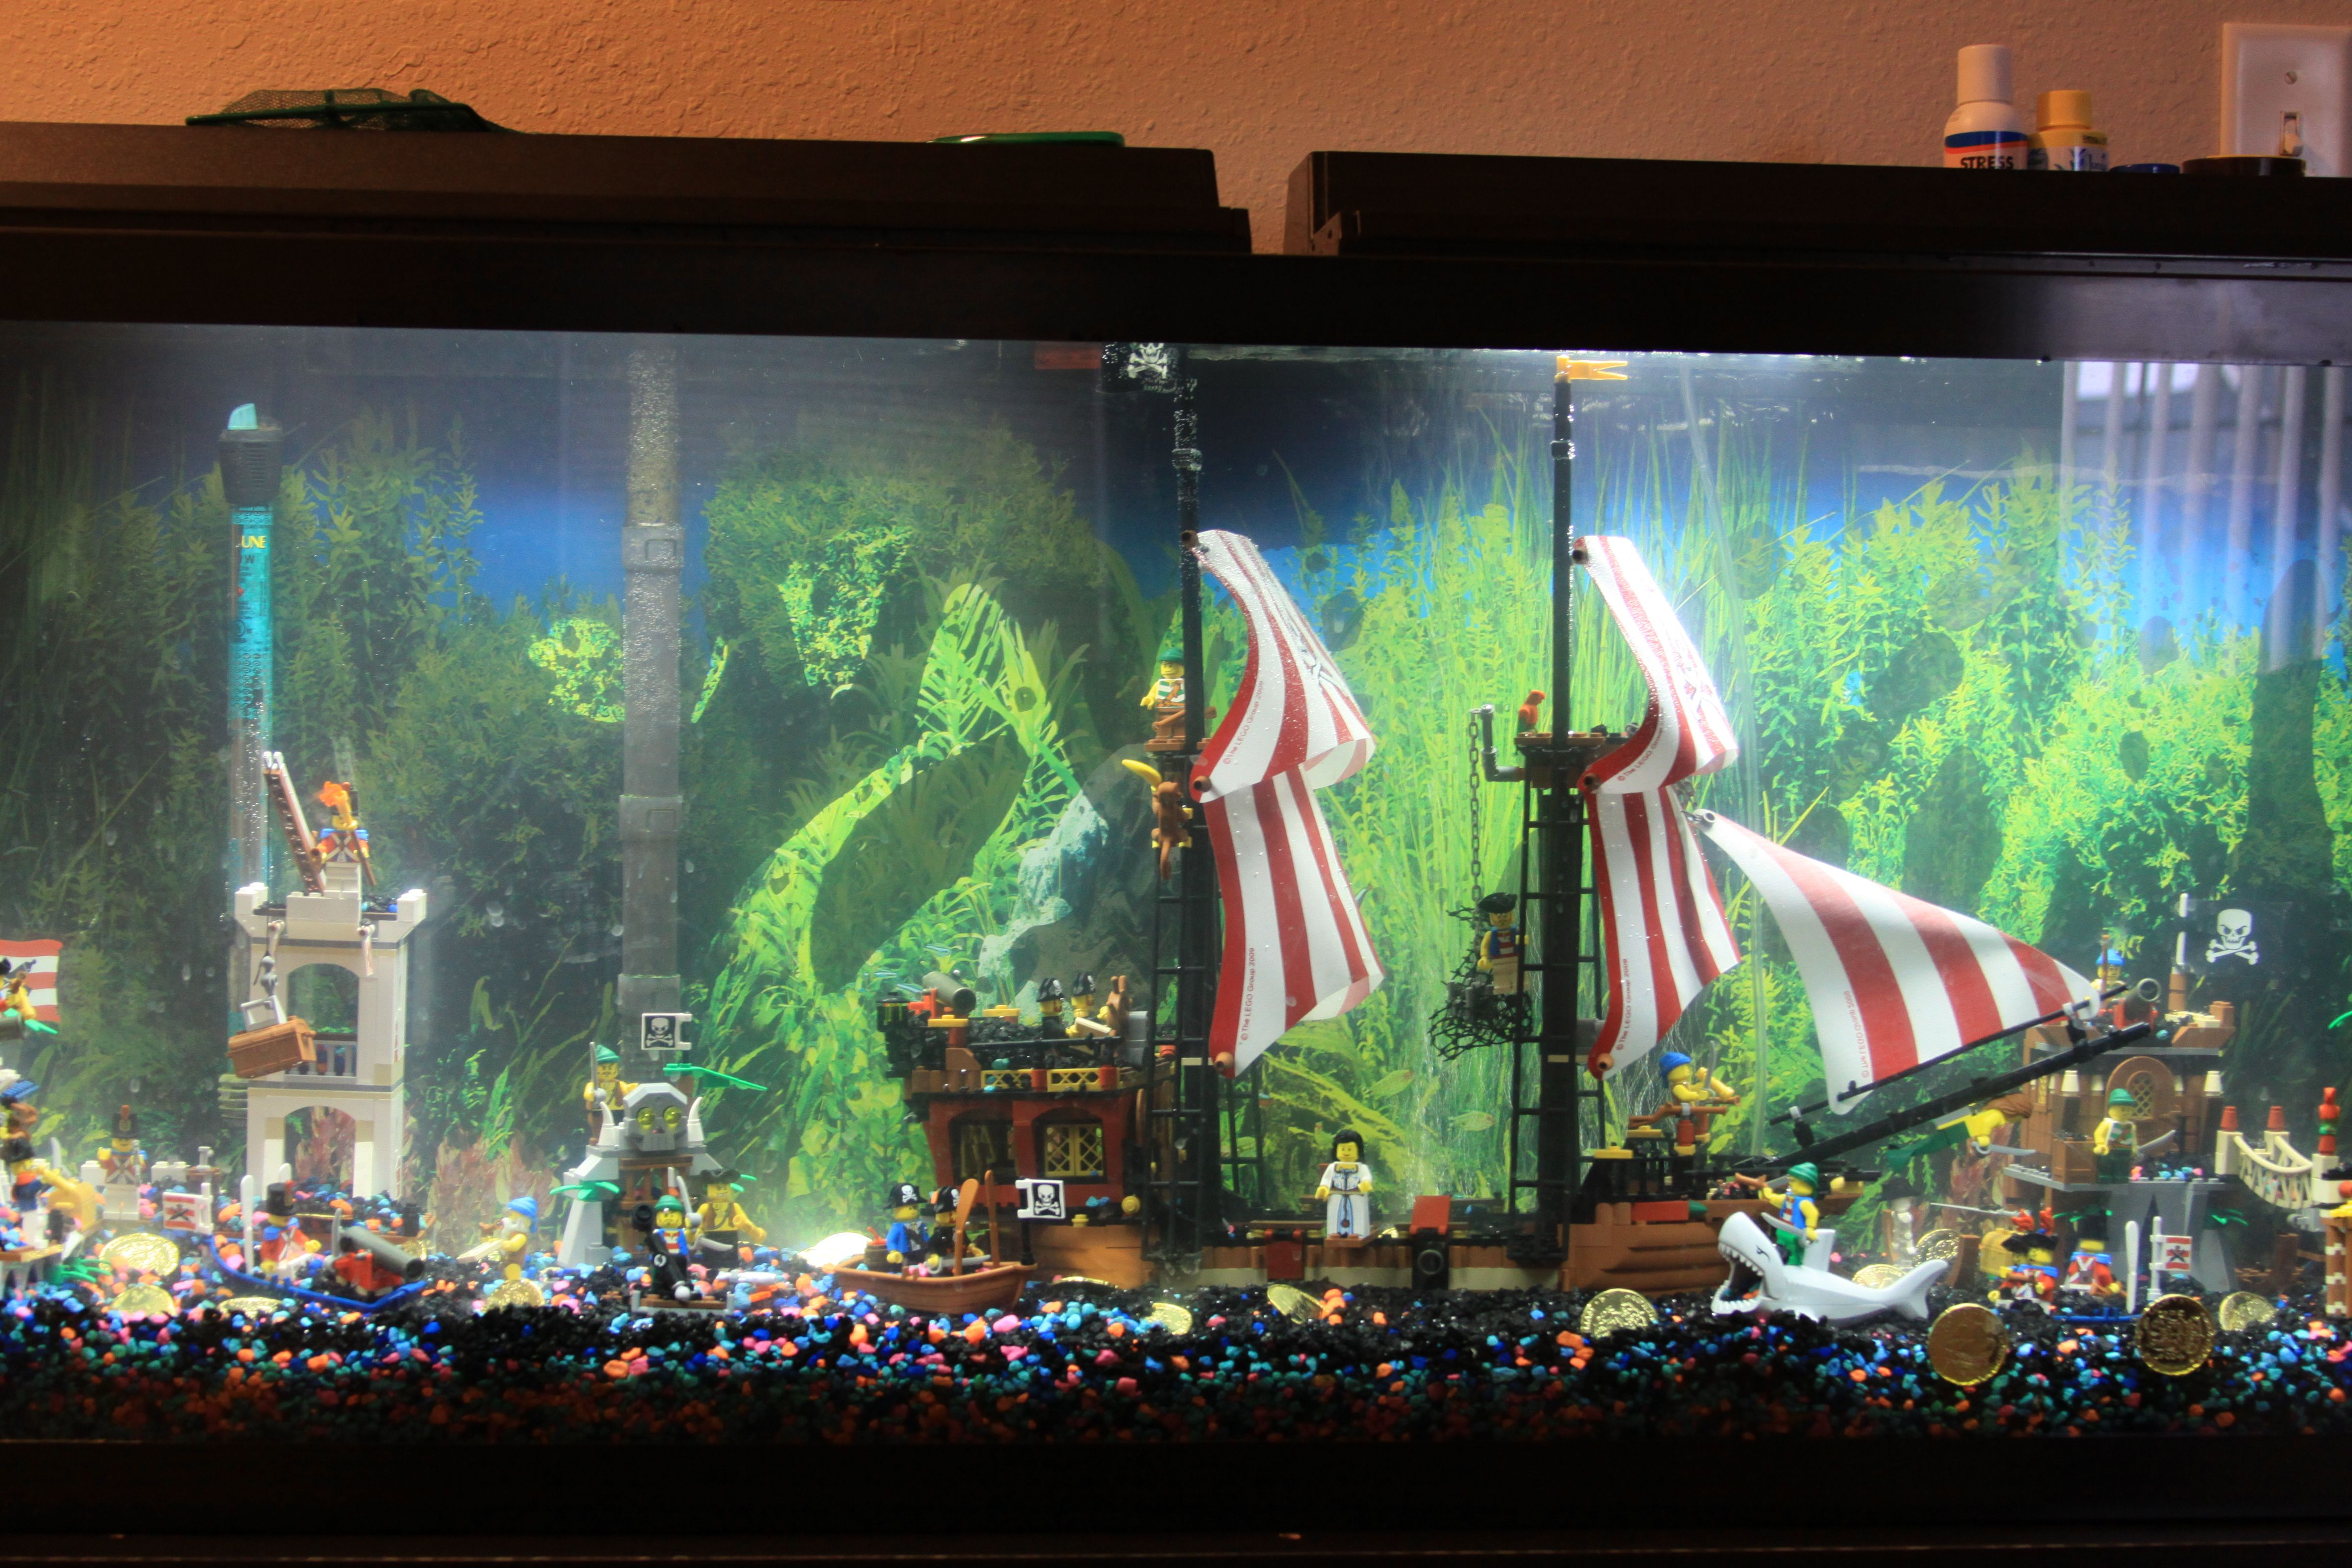 pirate lego fish tank in my home home decor